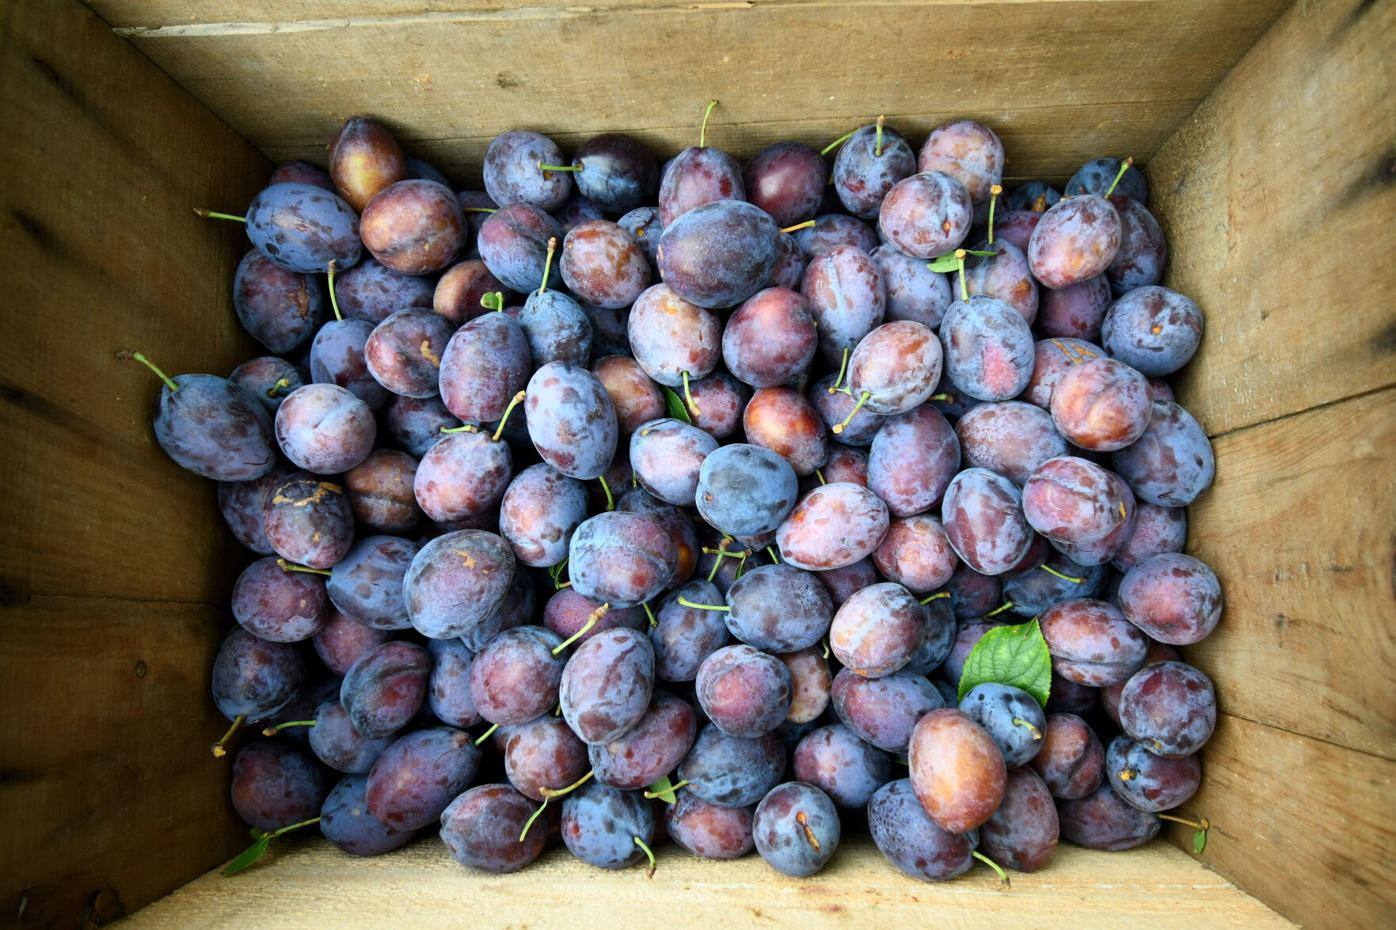 A wooden box of plums